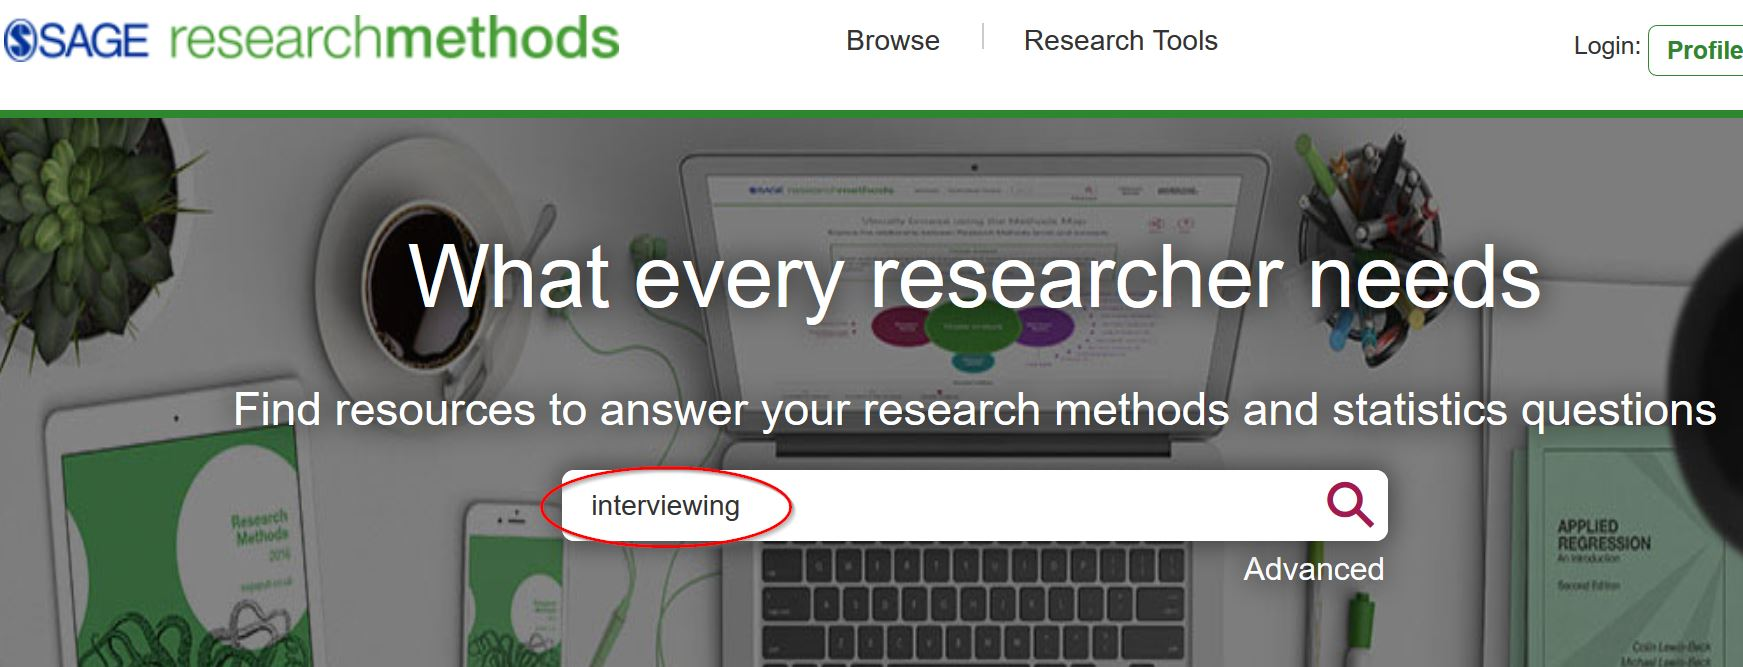 sage research